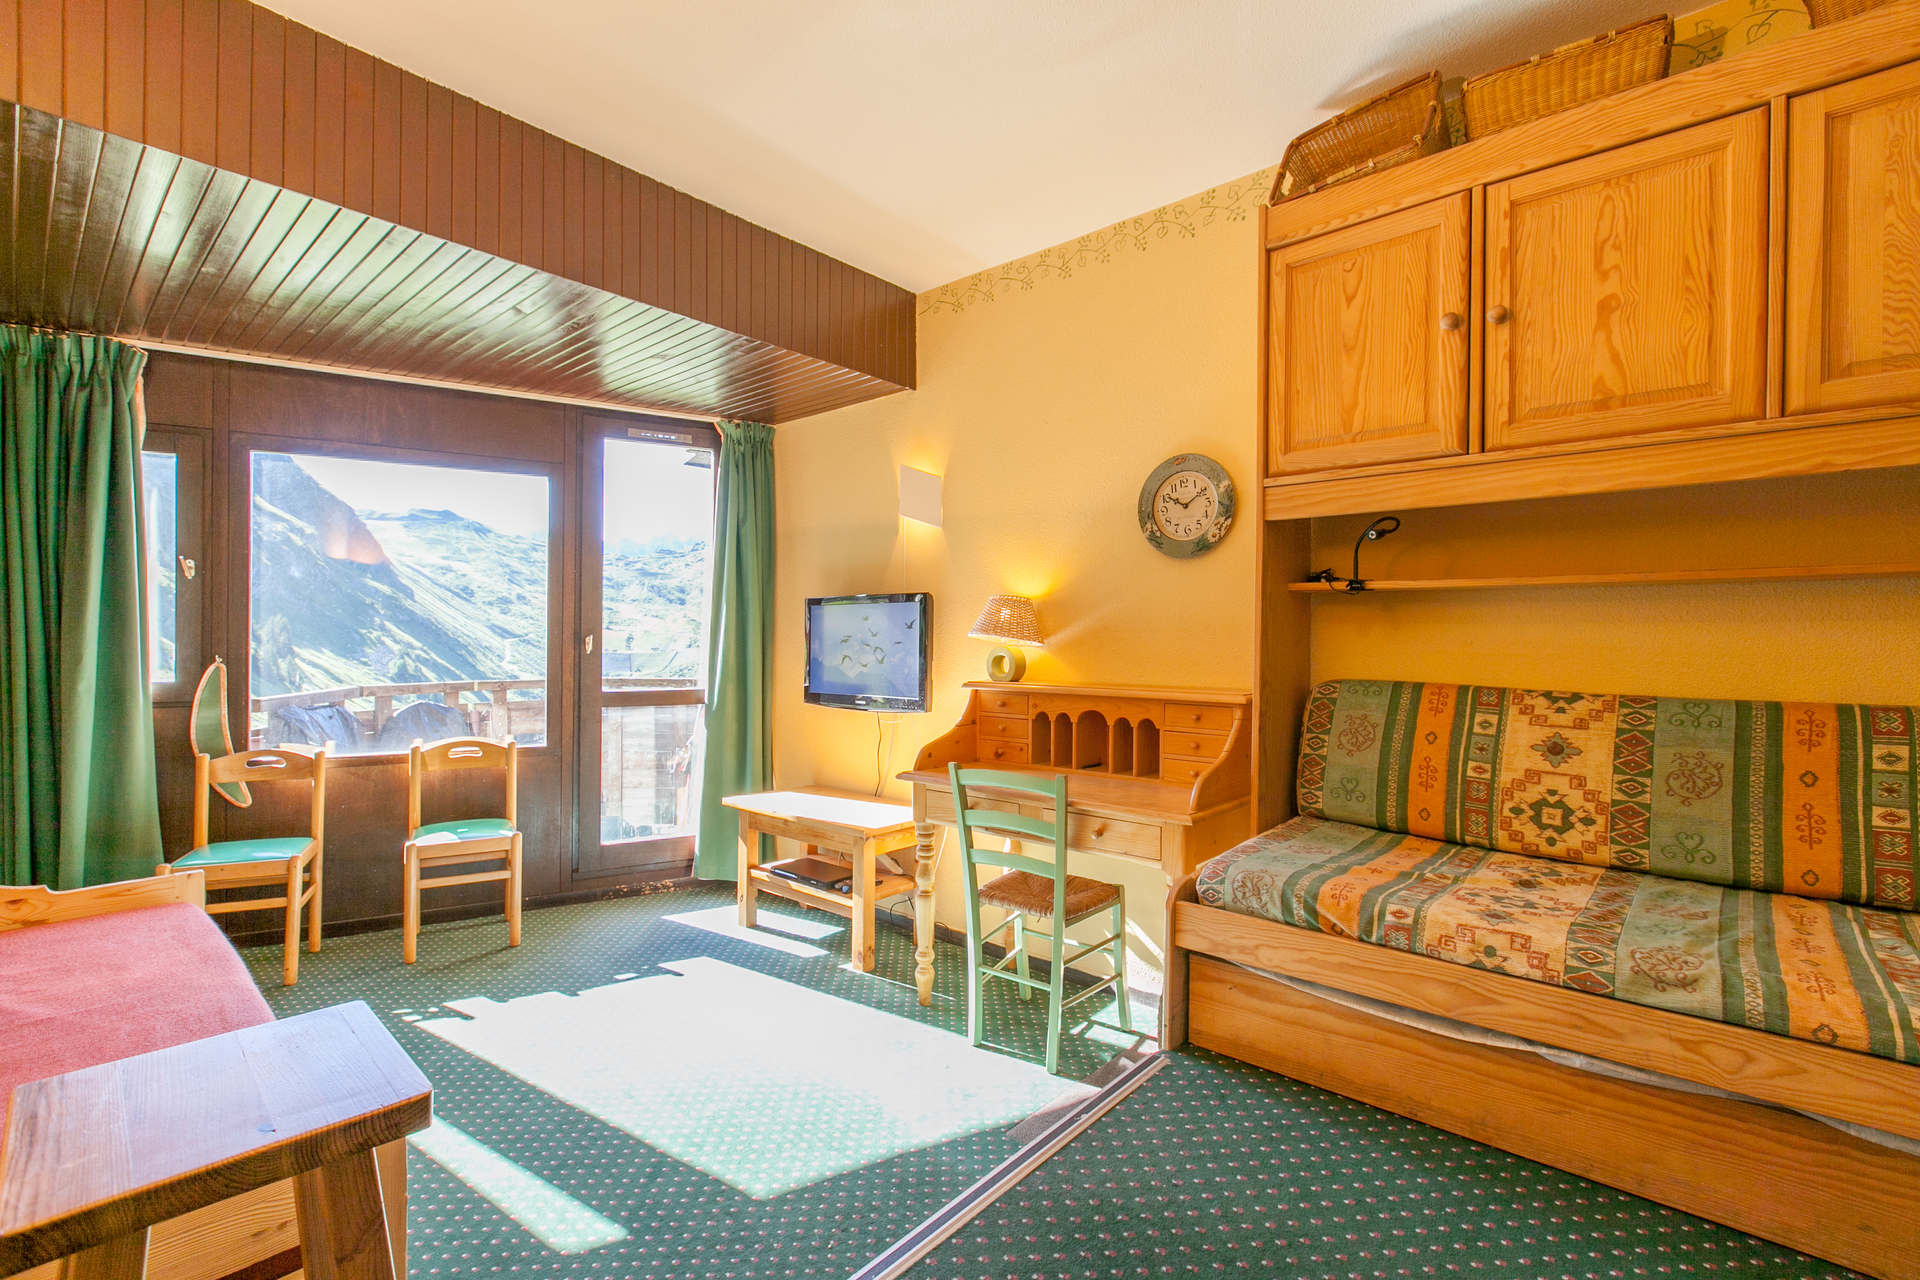 Avoriaz Location Location Avoriaz Location De Studios Et D 39appartements